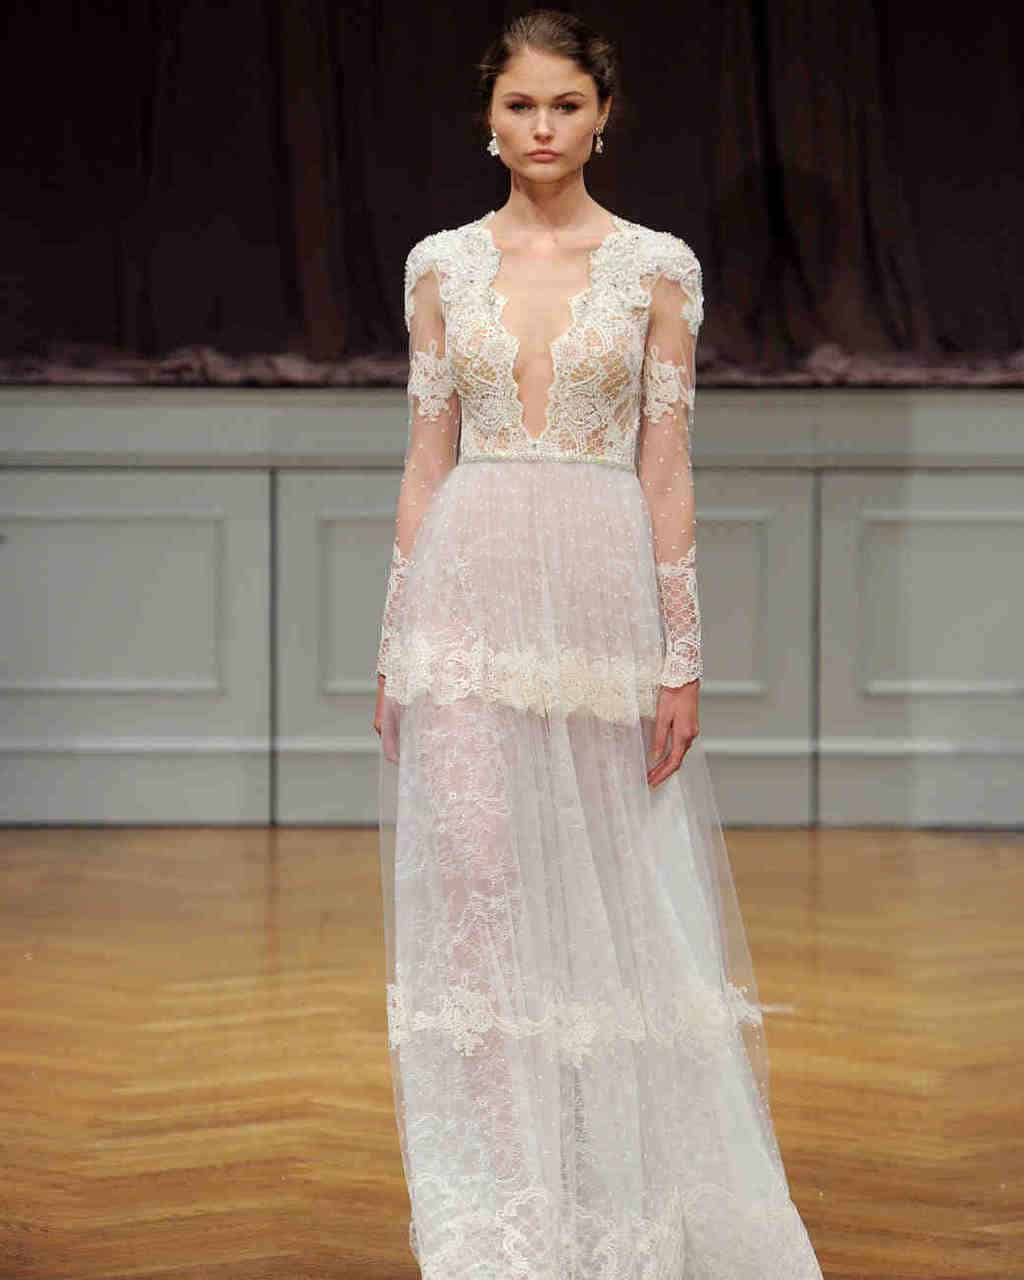 alon-livne-white-wedding-dress-fall2017-6203351-004_vert